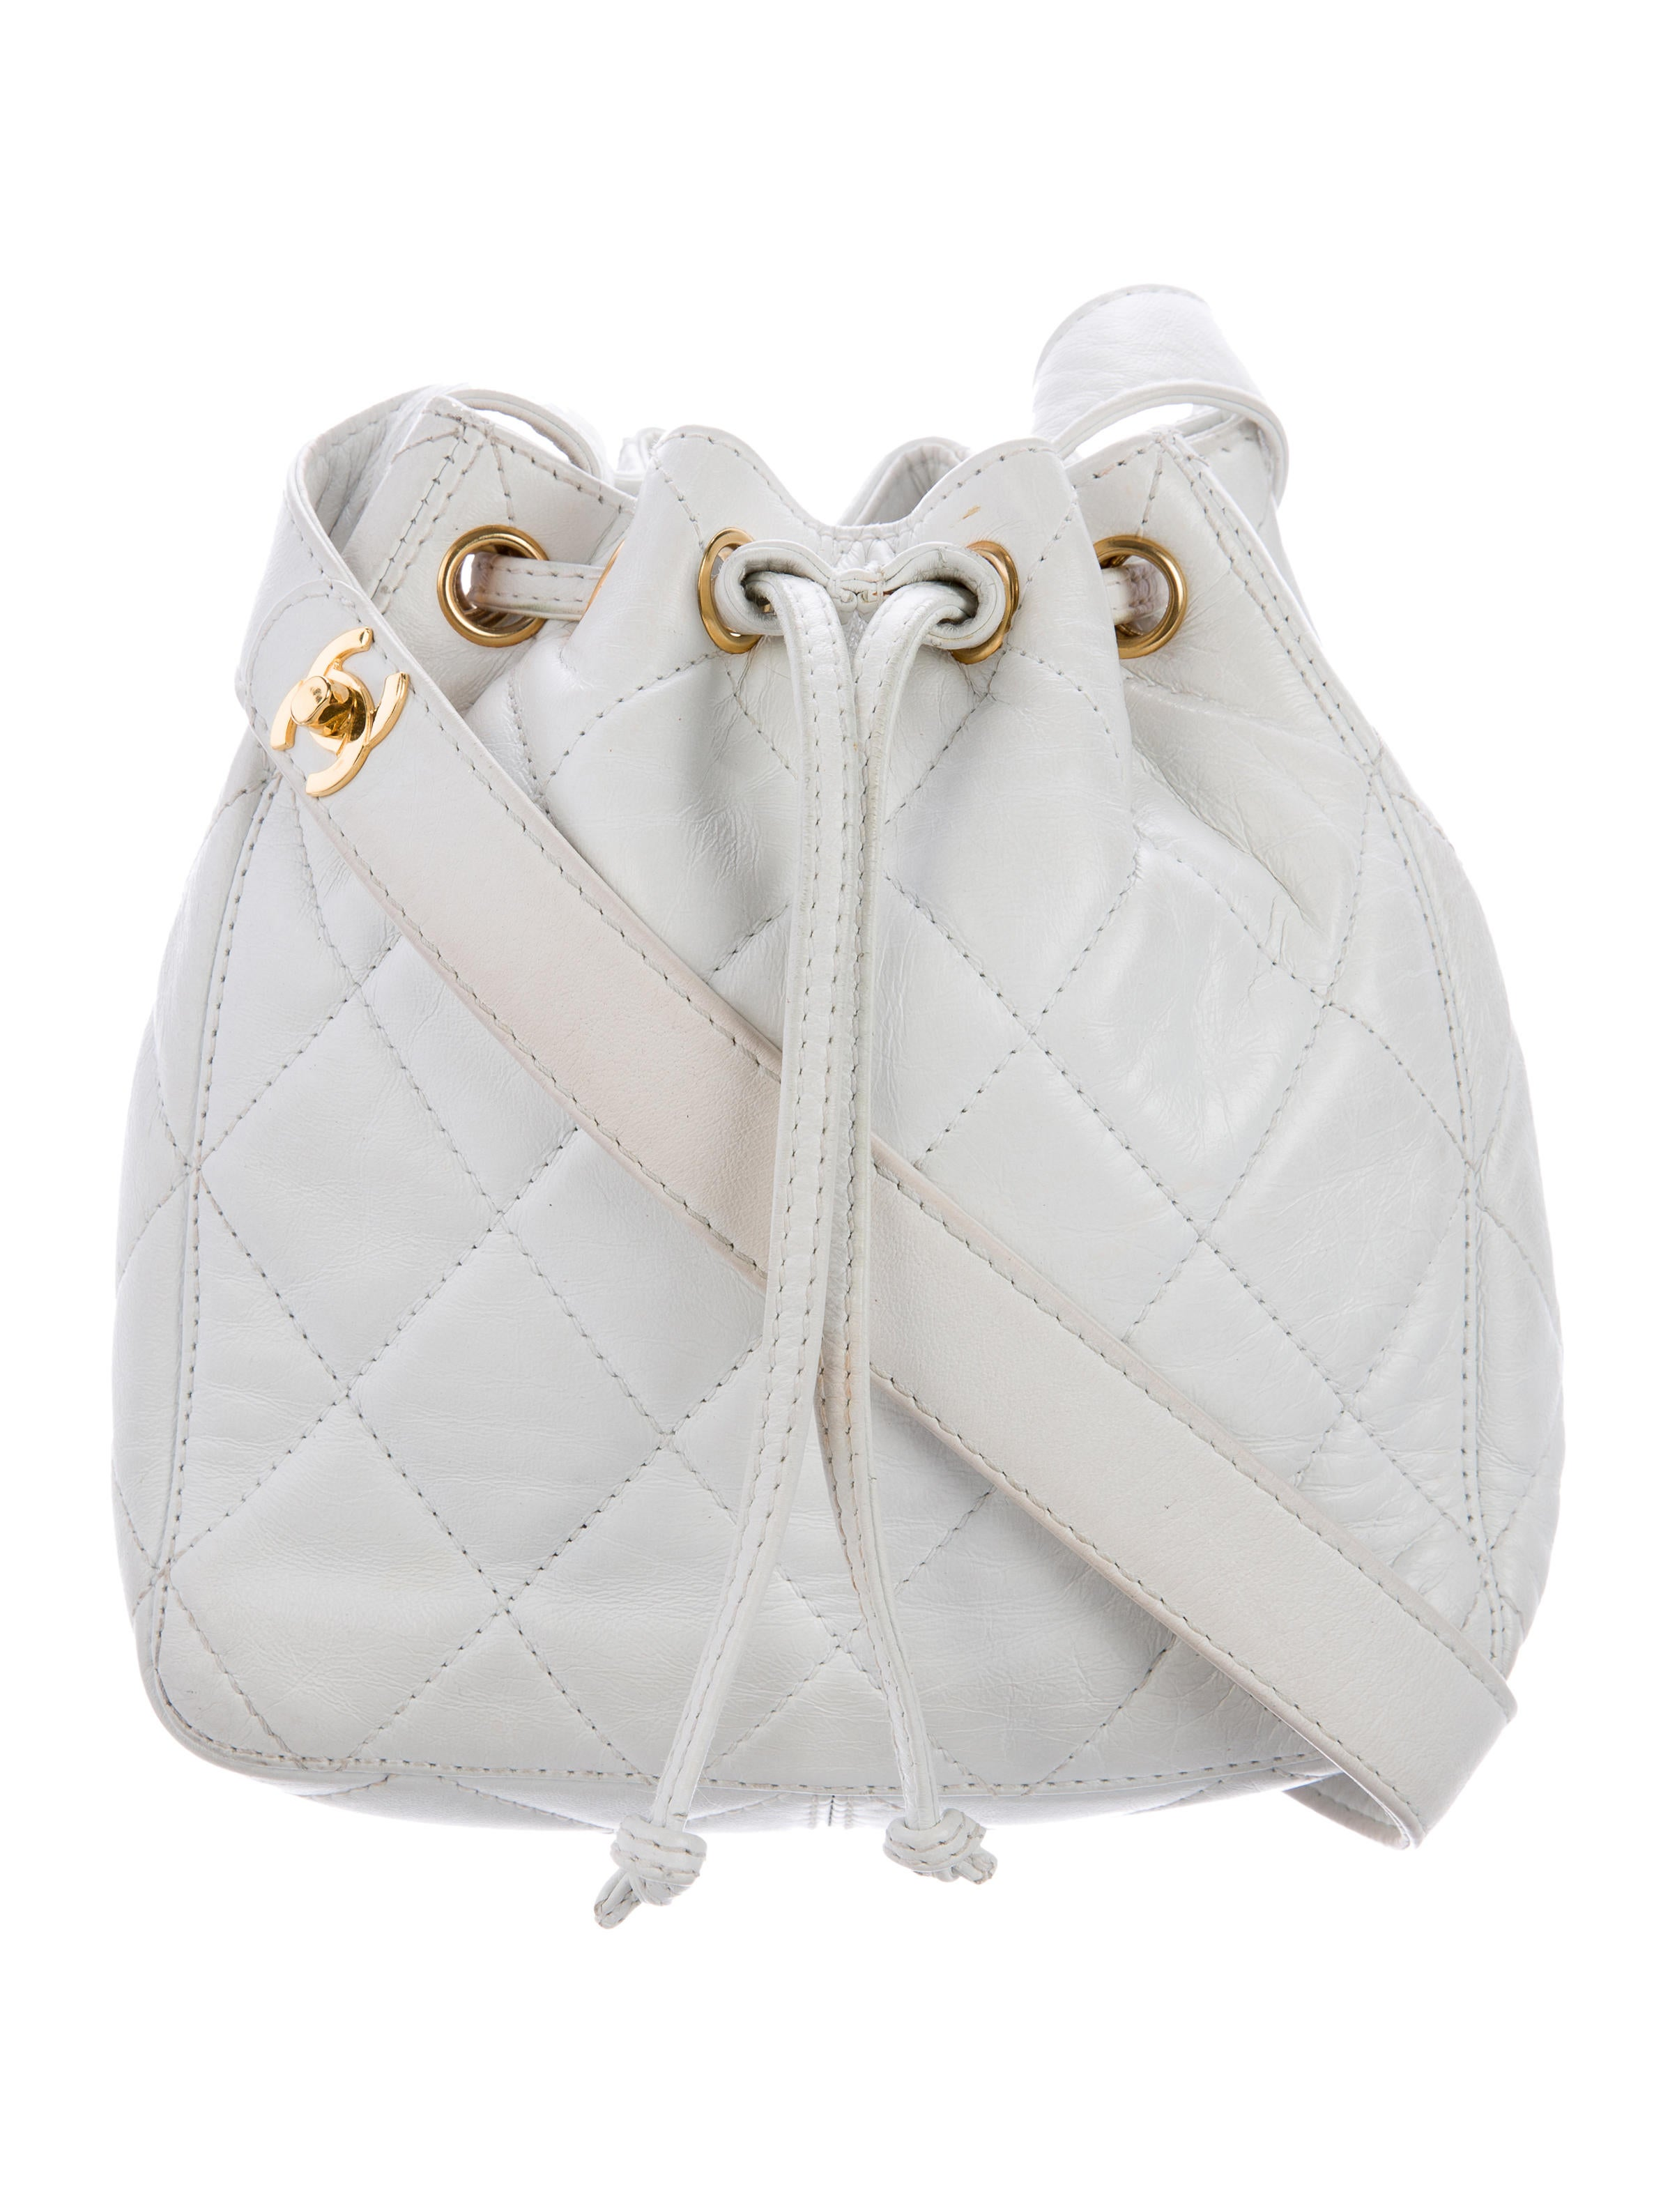 Chanel Quilted Lambskin Drawstring Bag - Handbags - CHA146654 ...